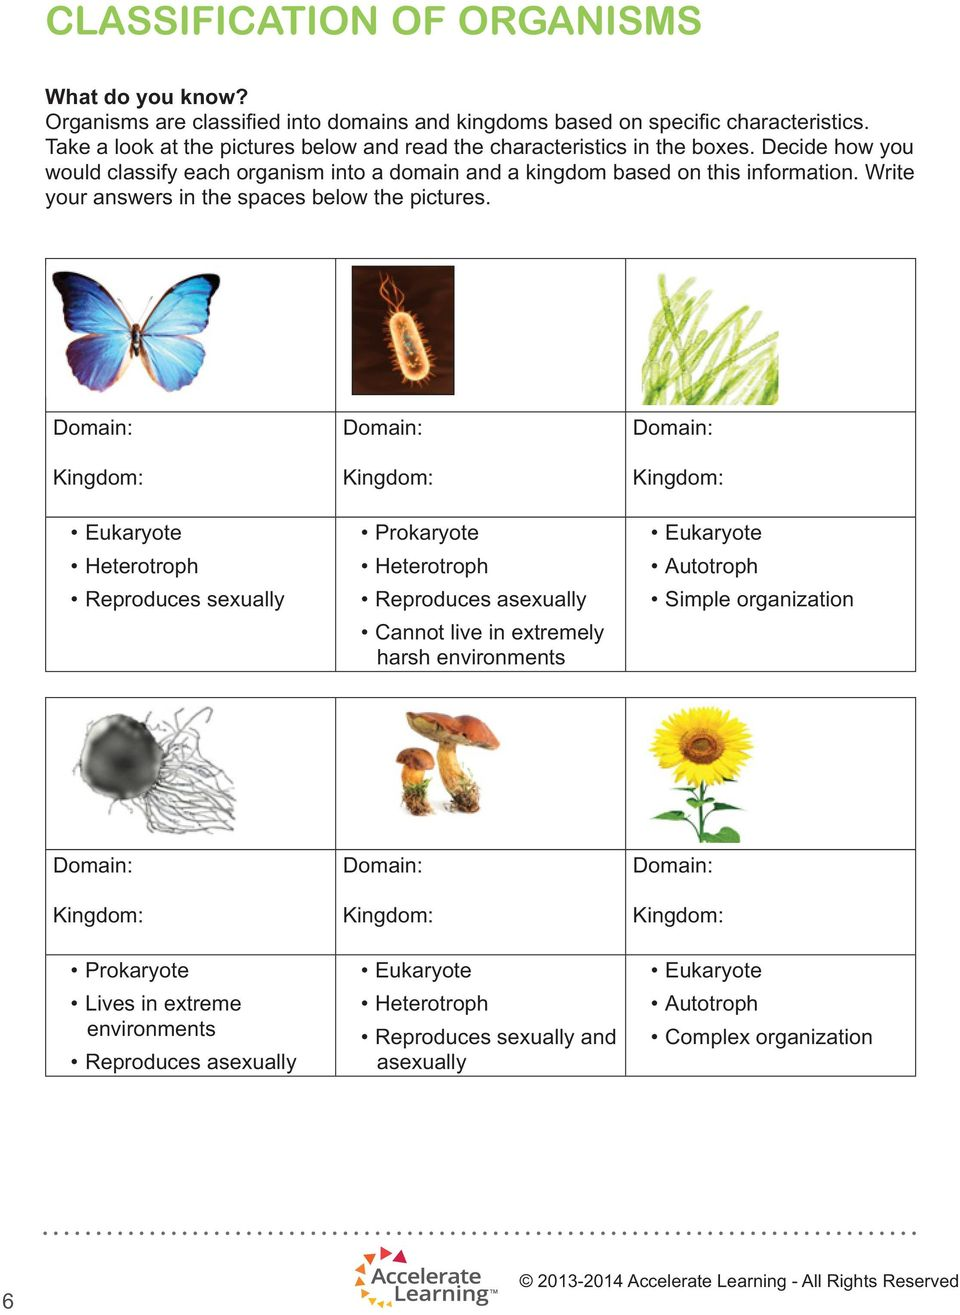 Decide how you would classify each organism into a domain and a kingdom based on this information. Write your answers in the spaces below the pictures.